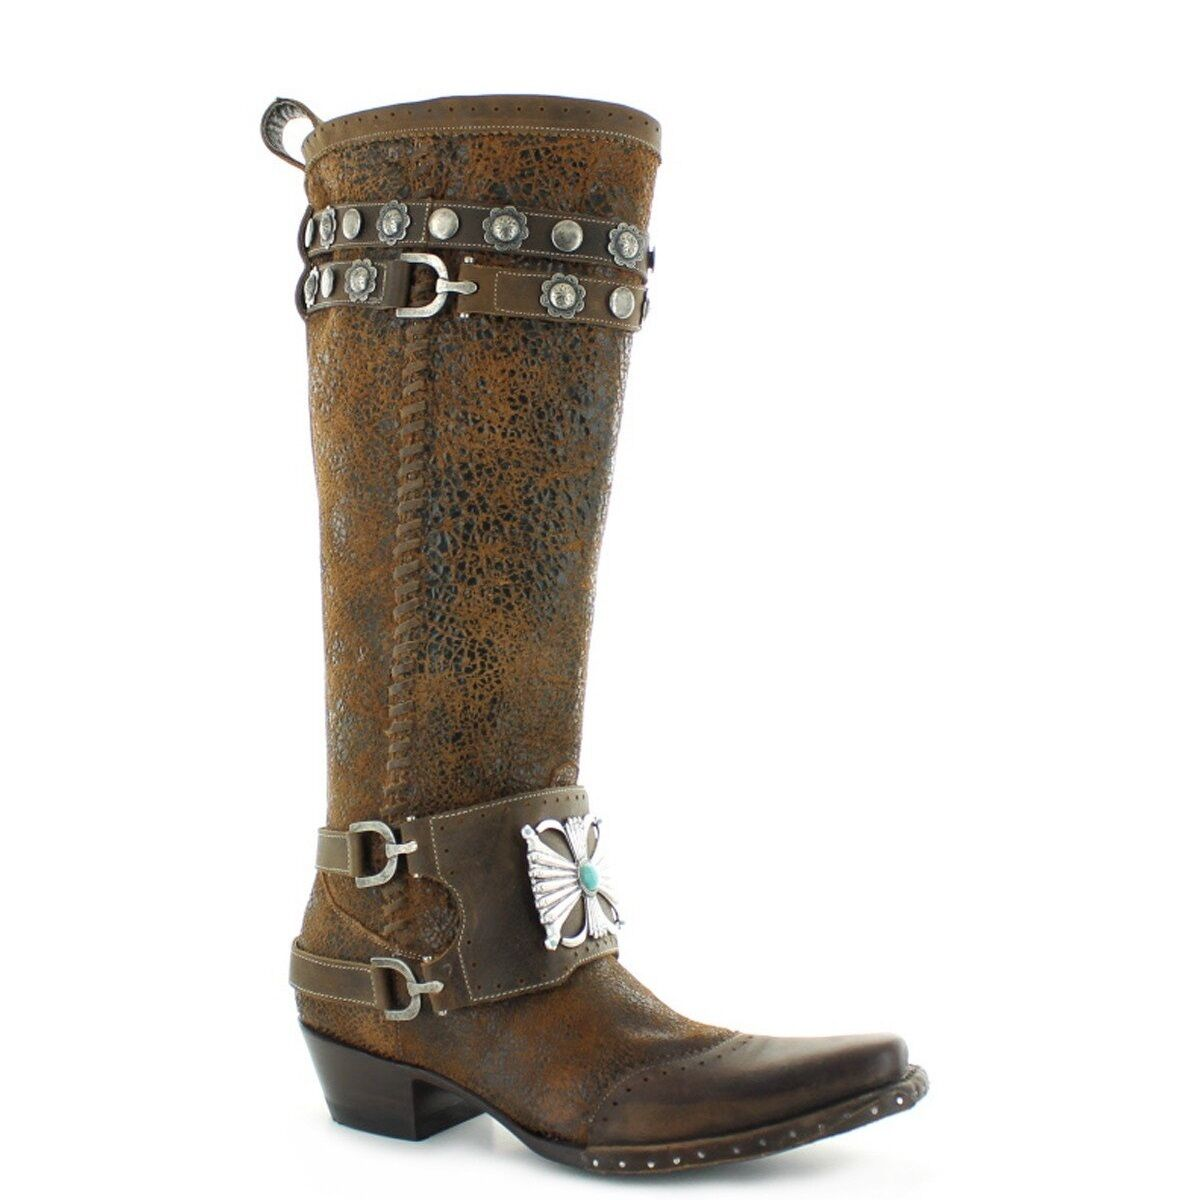 Double D Ranch Ladies Bow Guard Crackled Rust Knee-High Boots DDL003-1